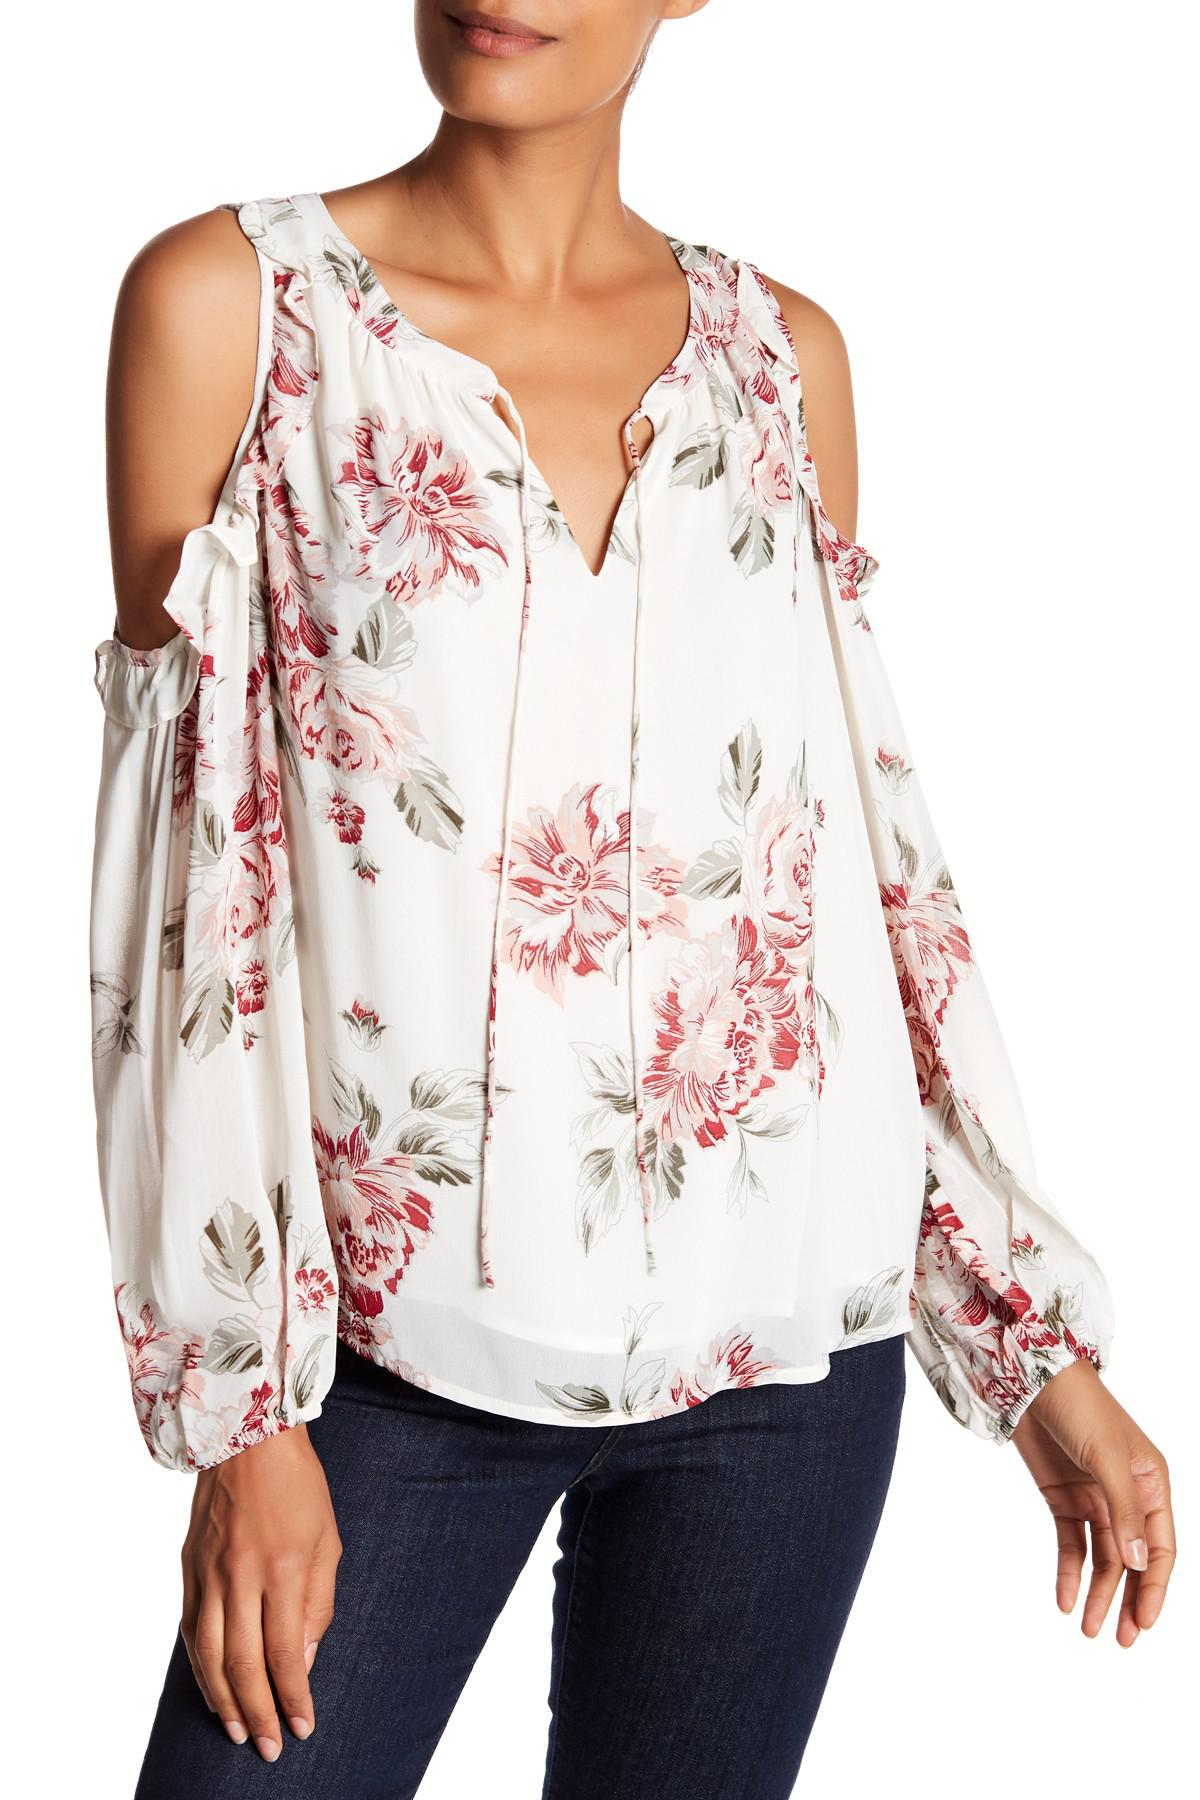 573cd1ab86448 Lyst - Sanctuary Blaire Floral Cold-shoulder Top